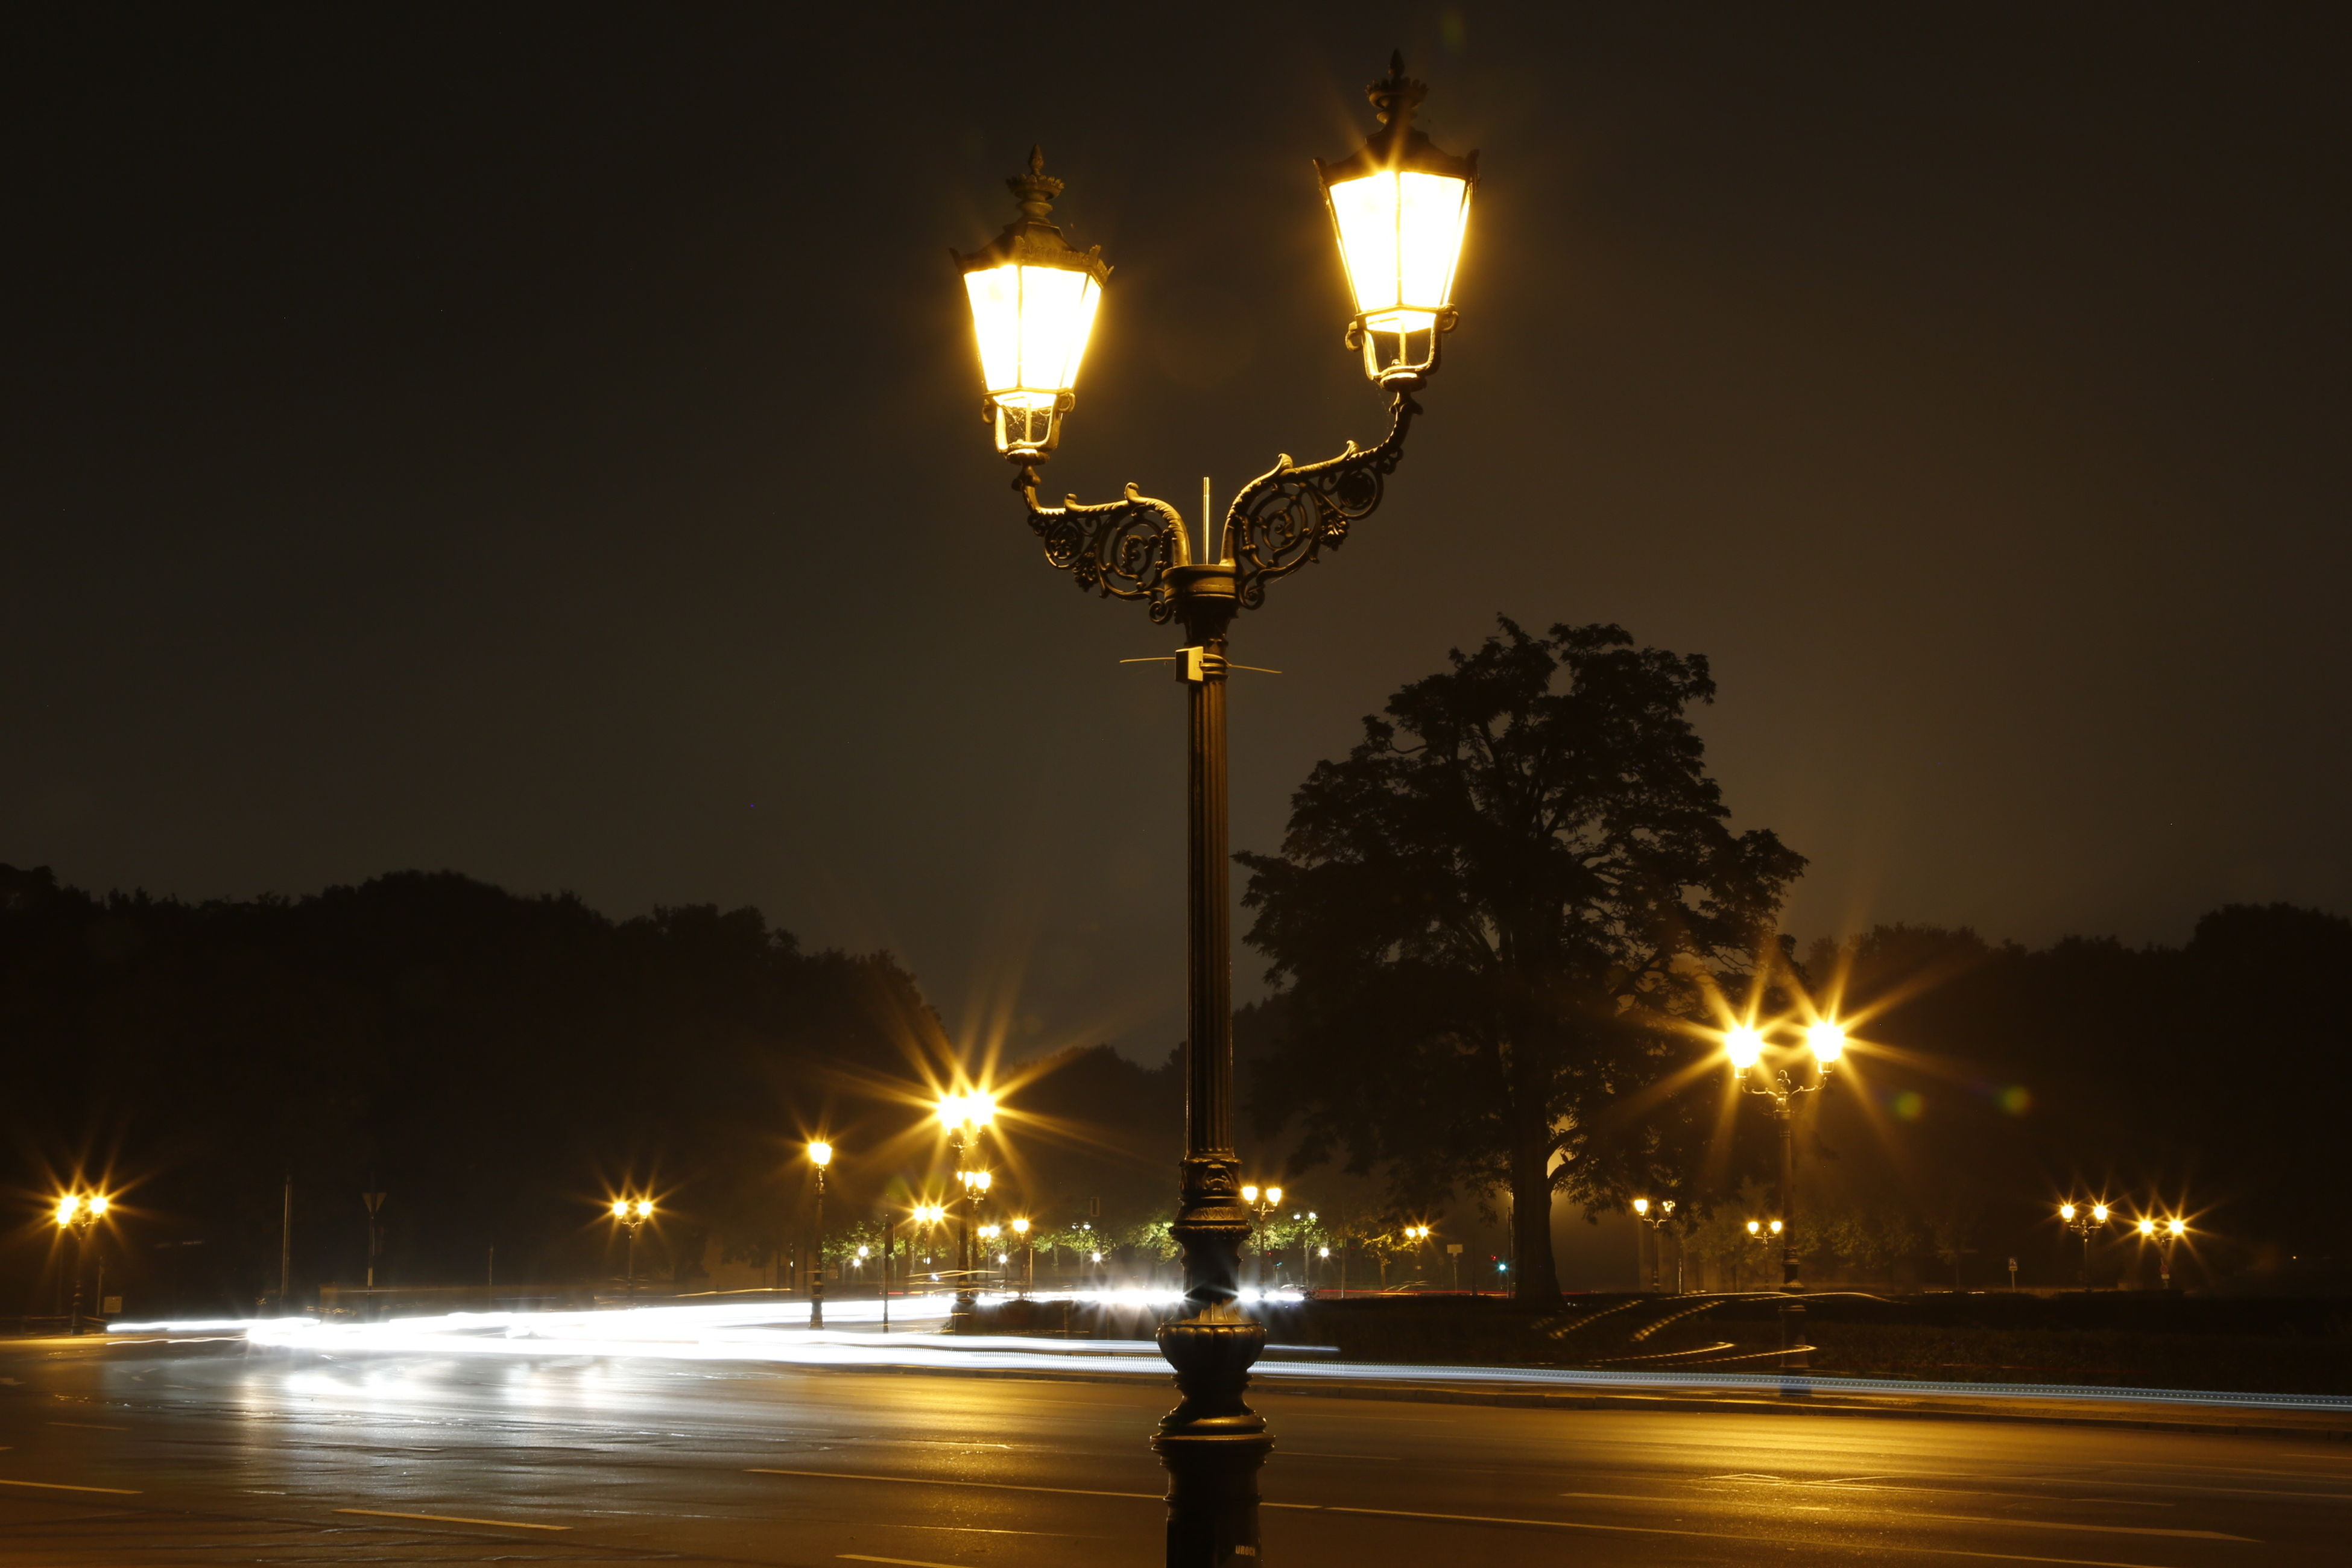 illuminated, night, street light, lighting equipment, electricity, glowing, electric light, sky, lit, street, light - natural phenomenon, dark, road, transportation, long exposure, lamp post, low angle view, outdoors, no people, in a row